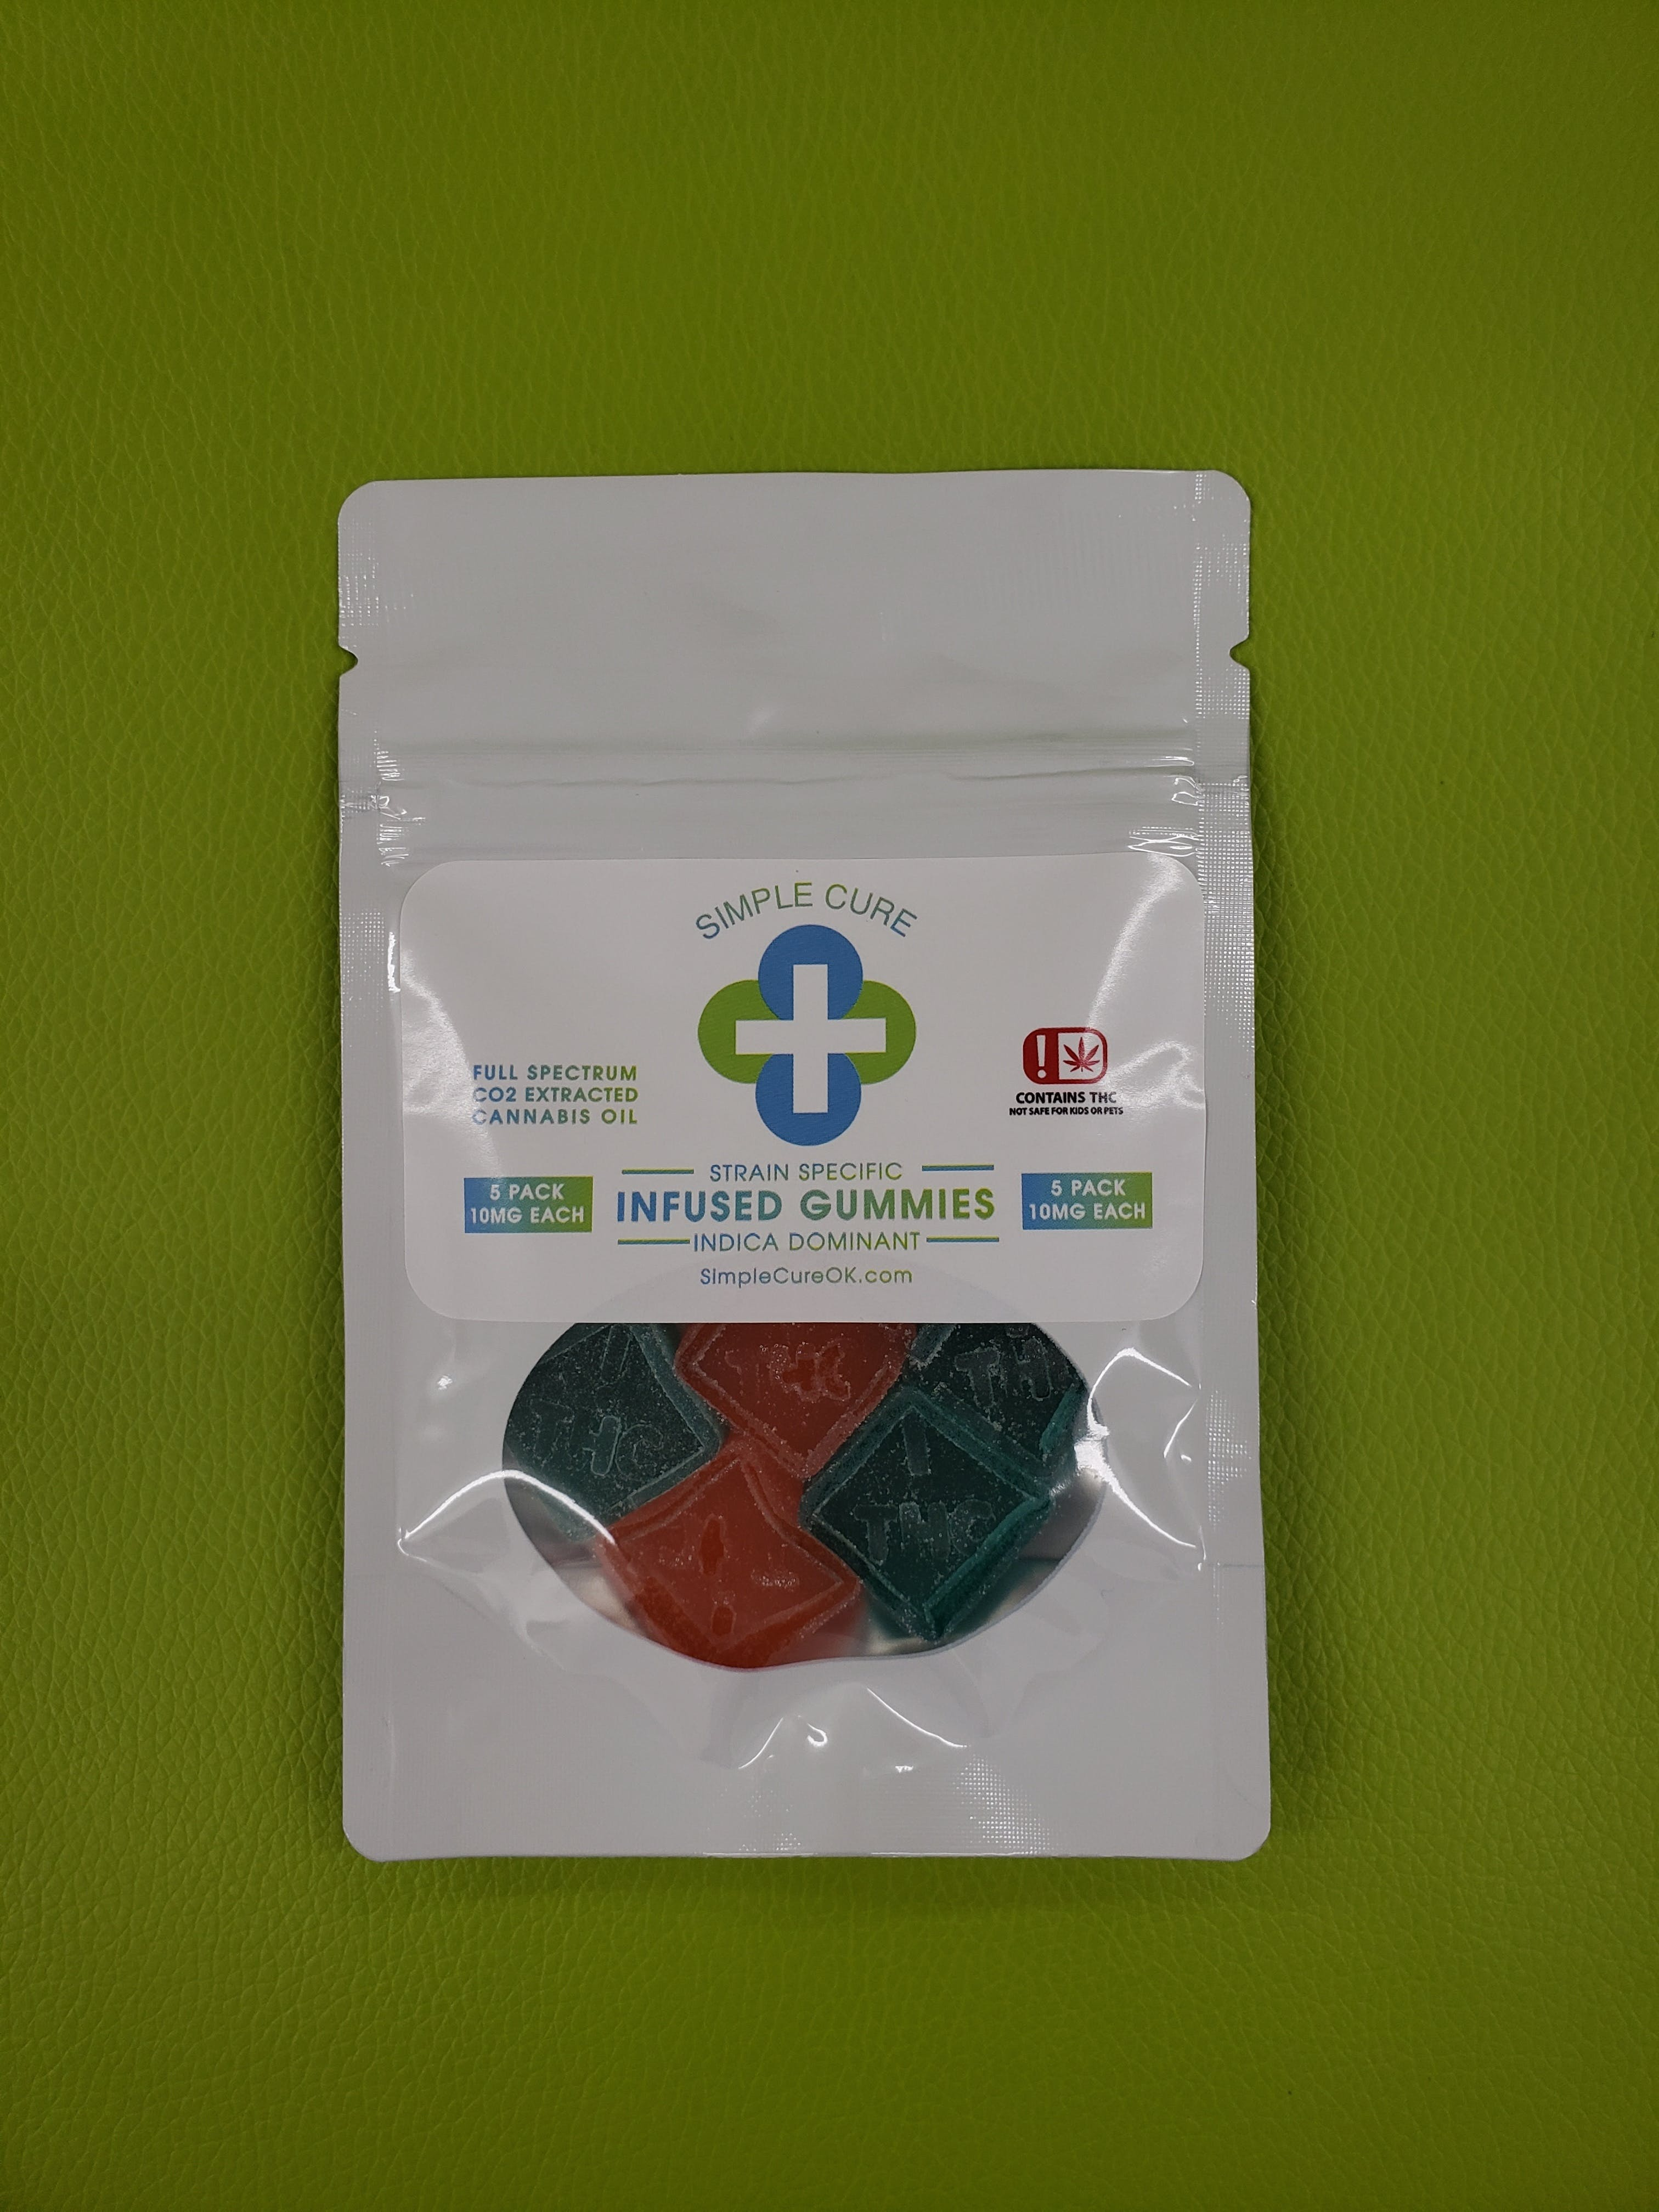 edible-simple-cure-5pk-indica-gummies-10mg-each-all-taxes-included